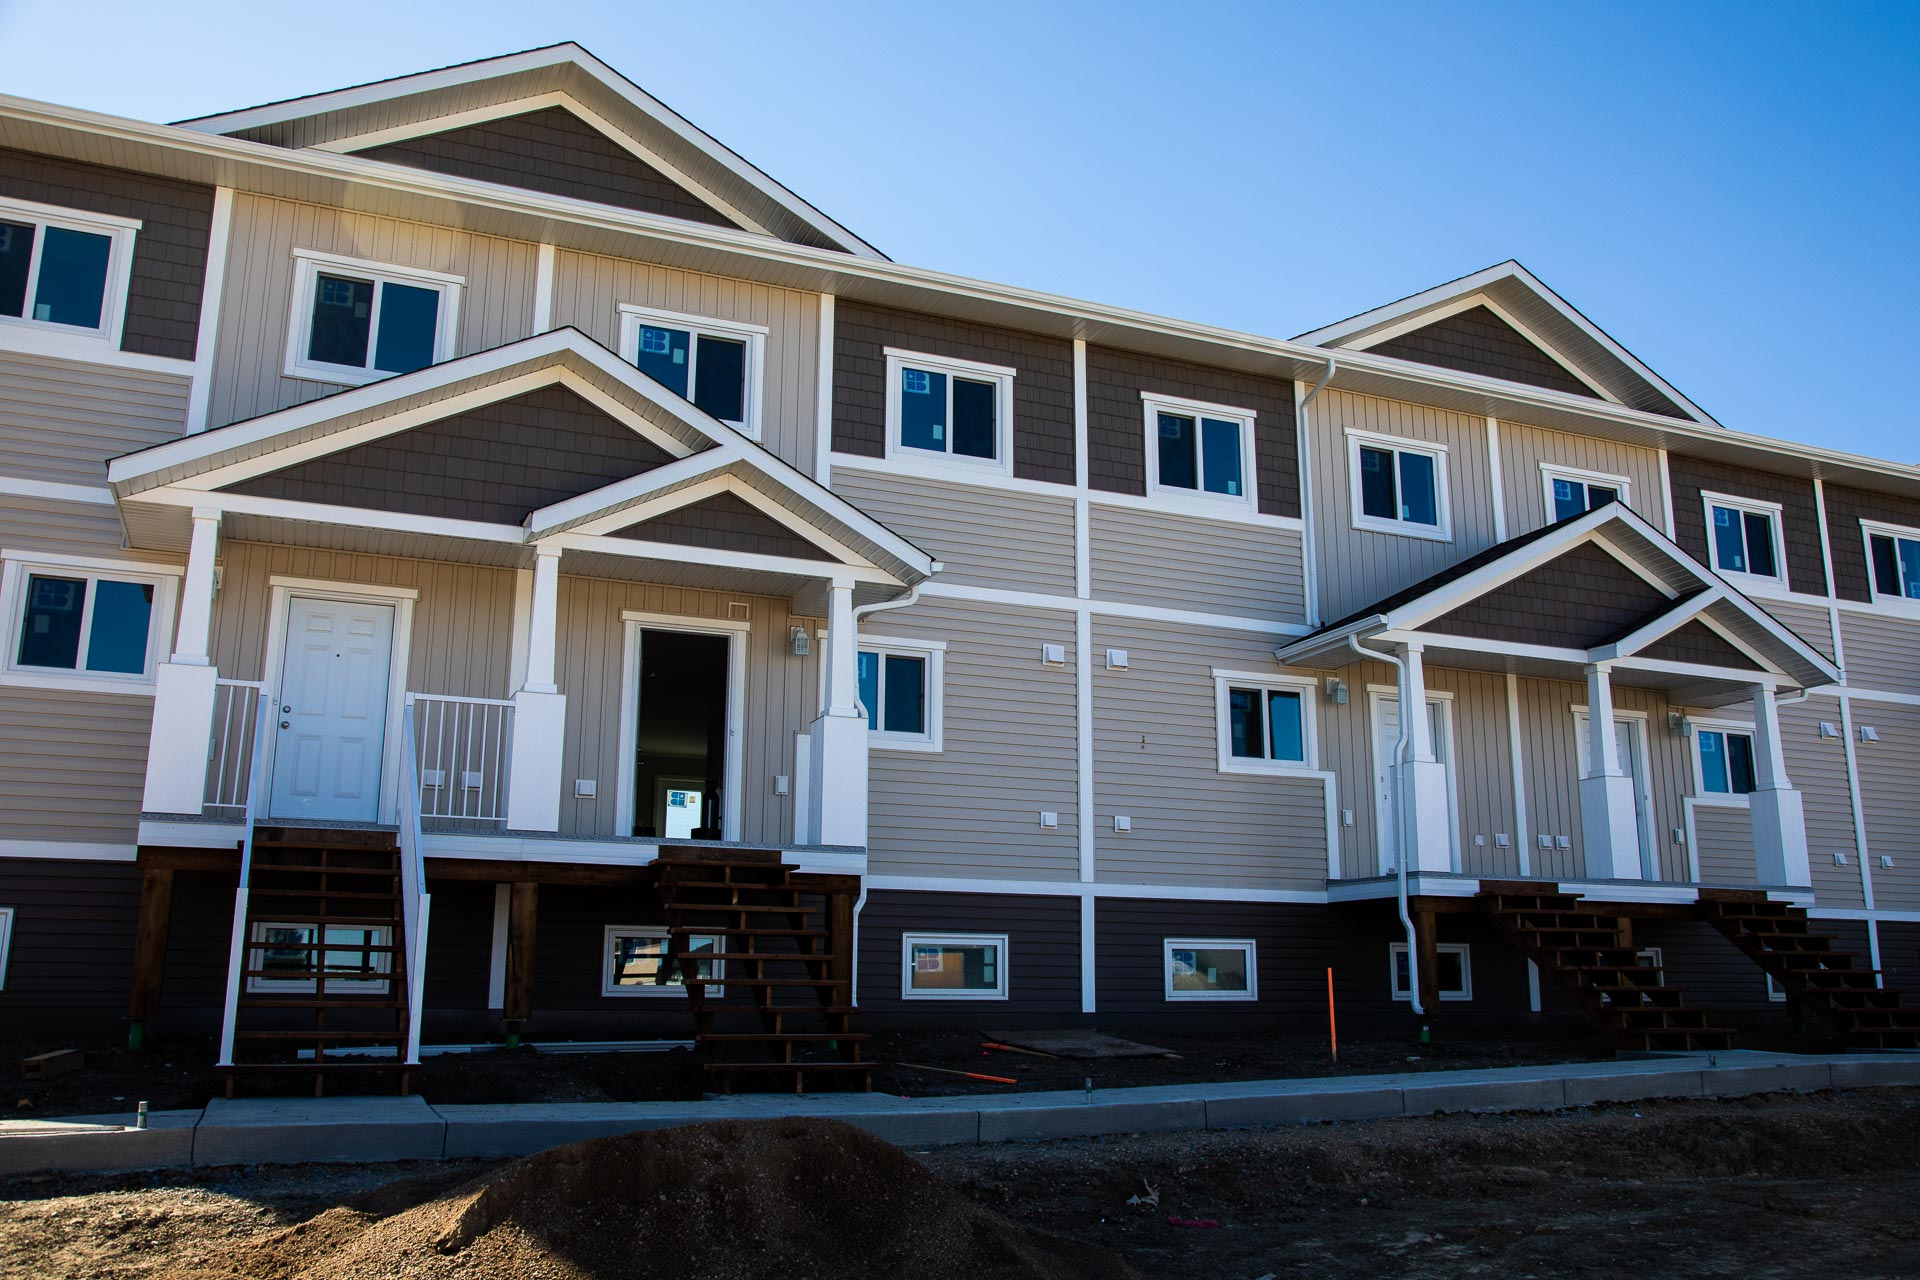 A rendering of the Willowview Heights townhouses in Saskatoon, Sask.